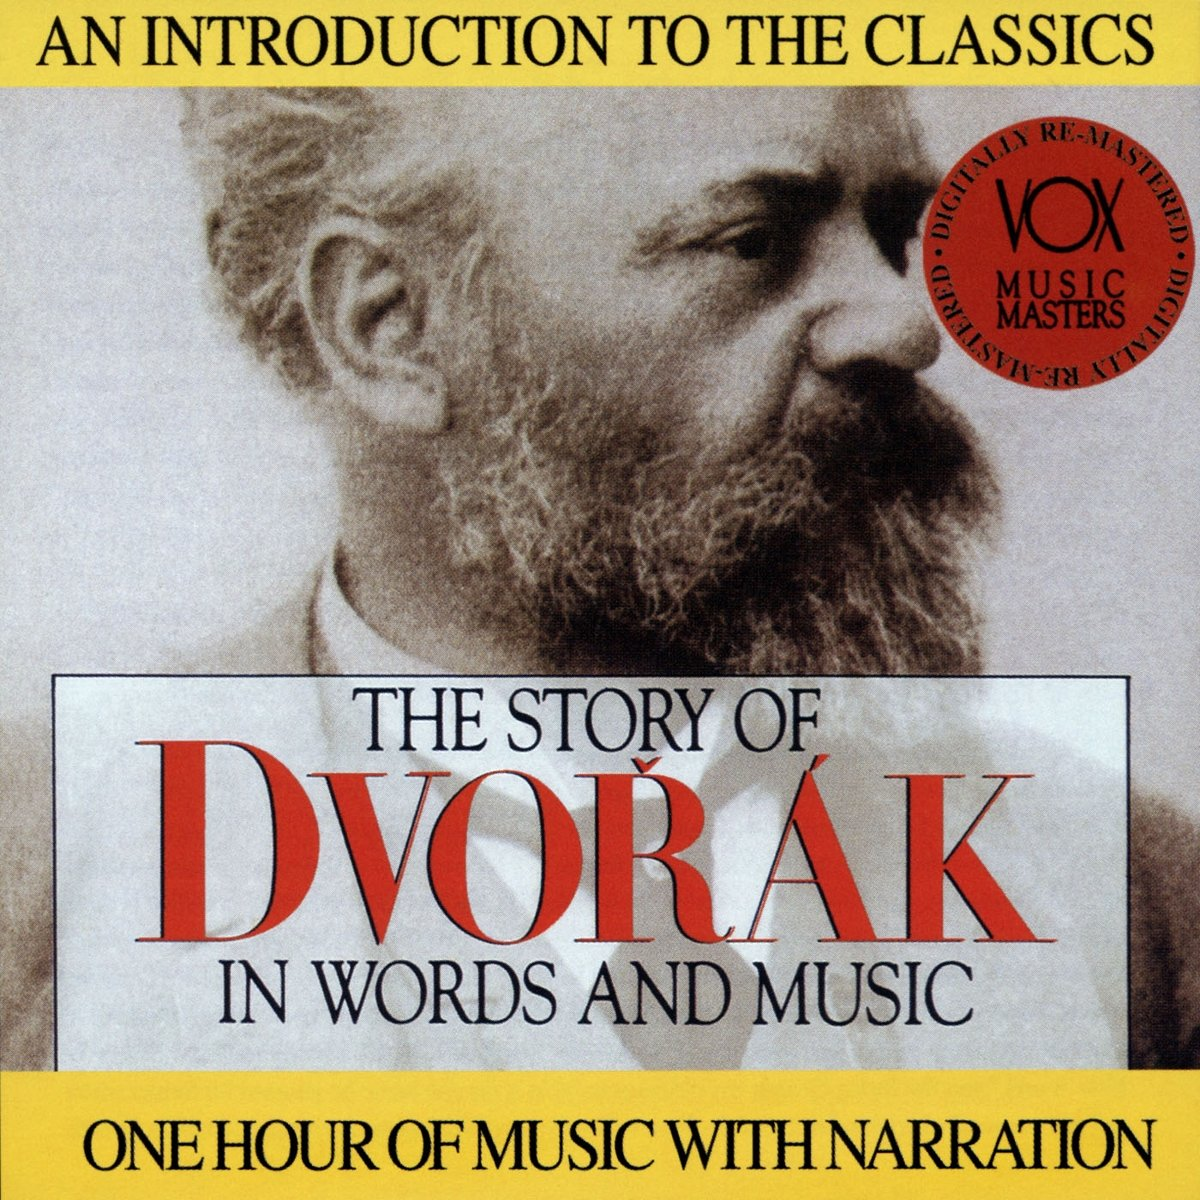 The Story of Dvorak in Words and Music